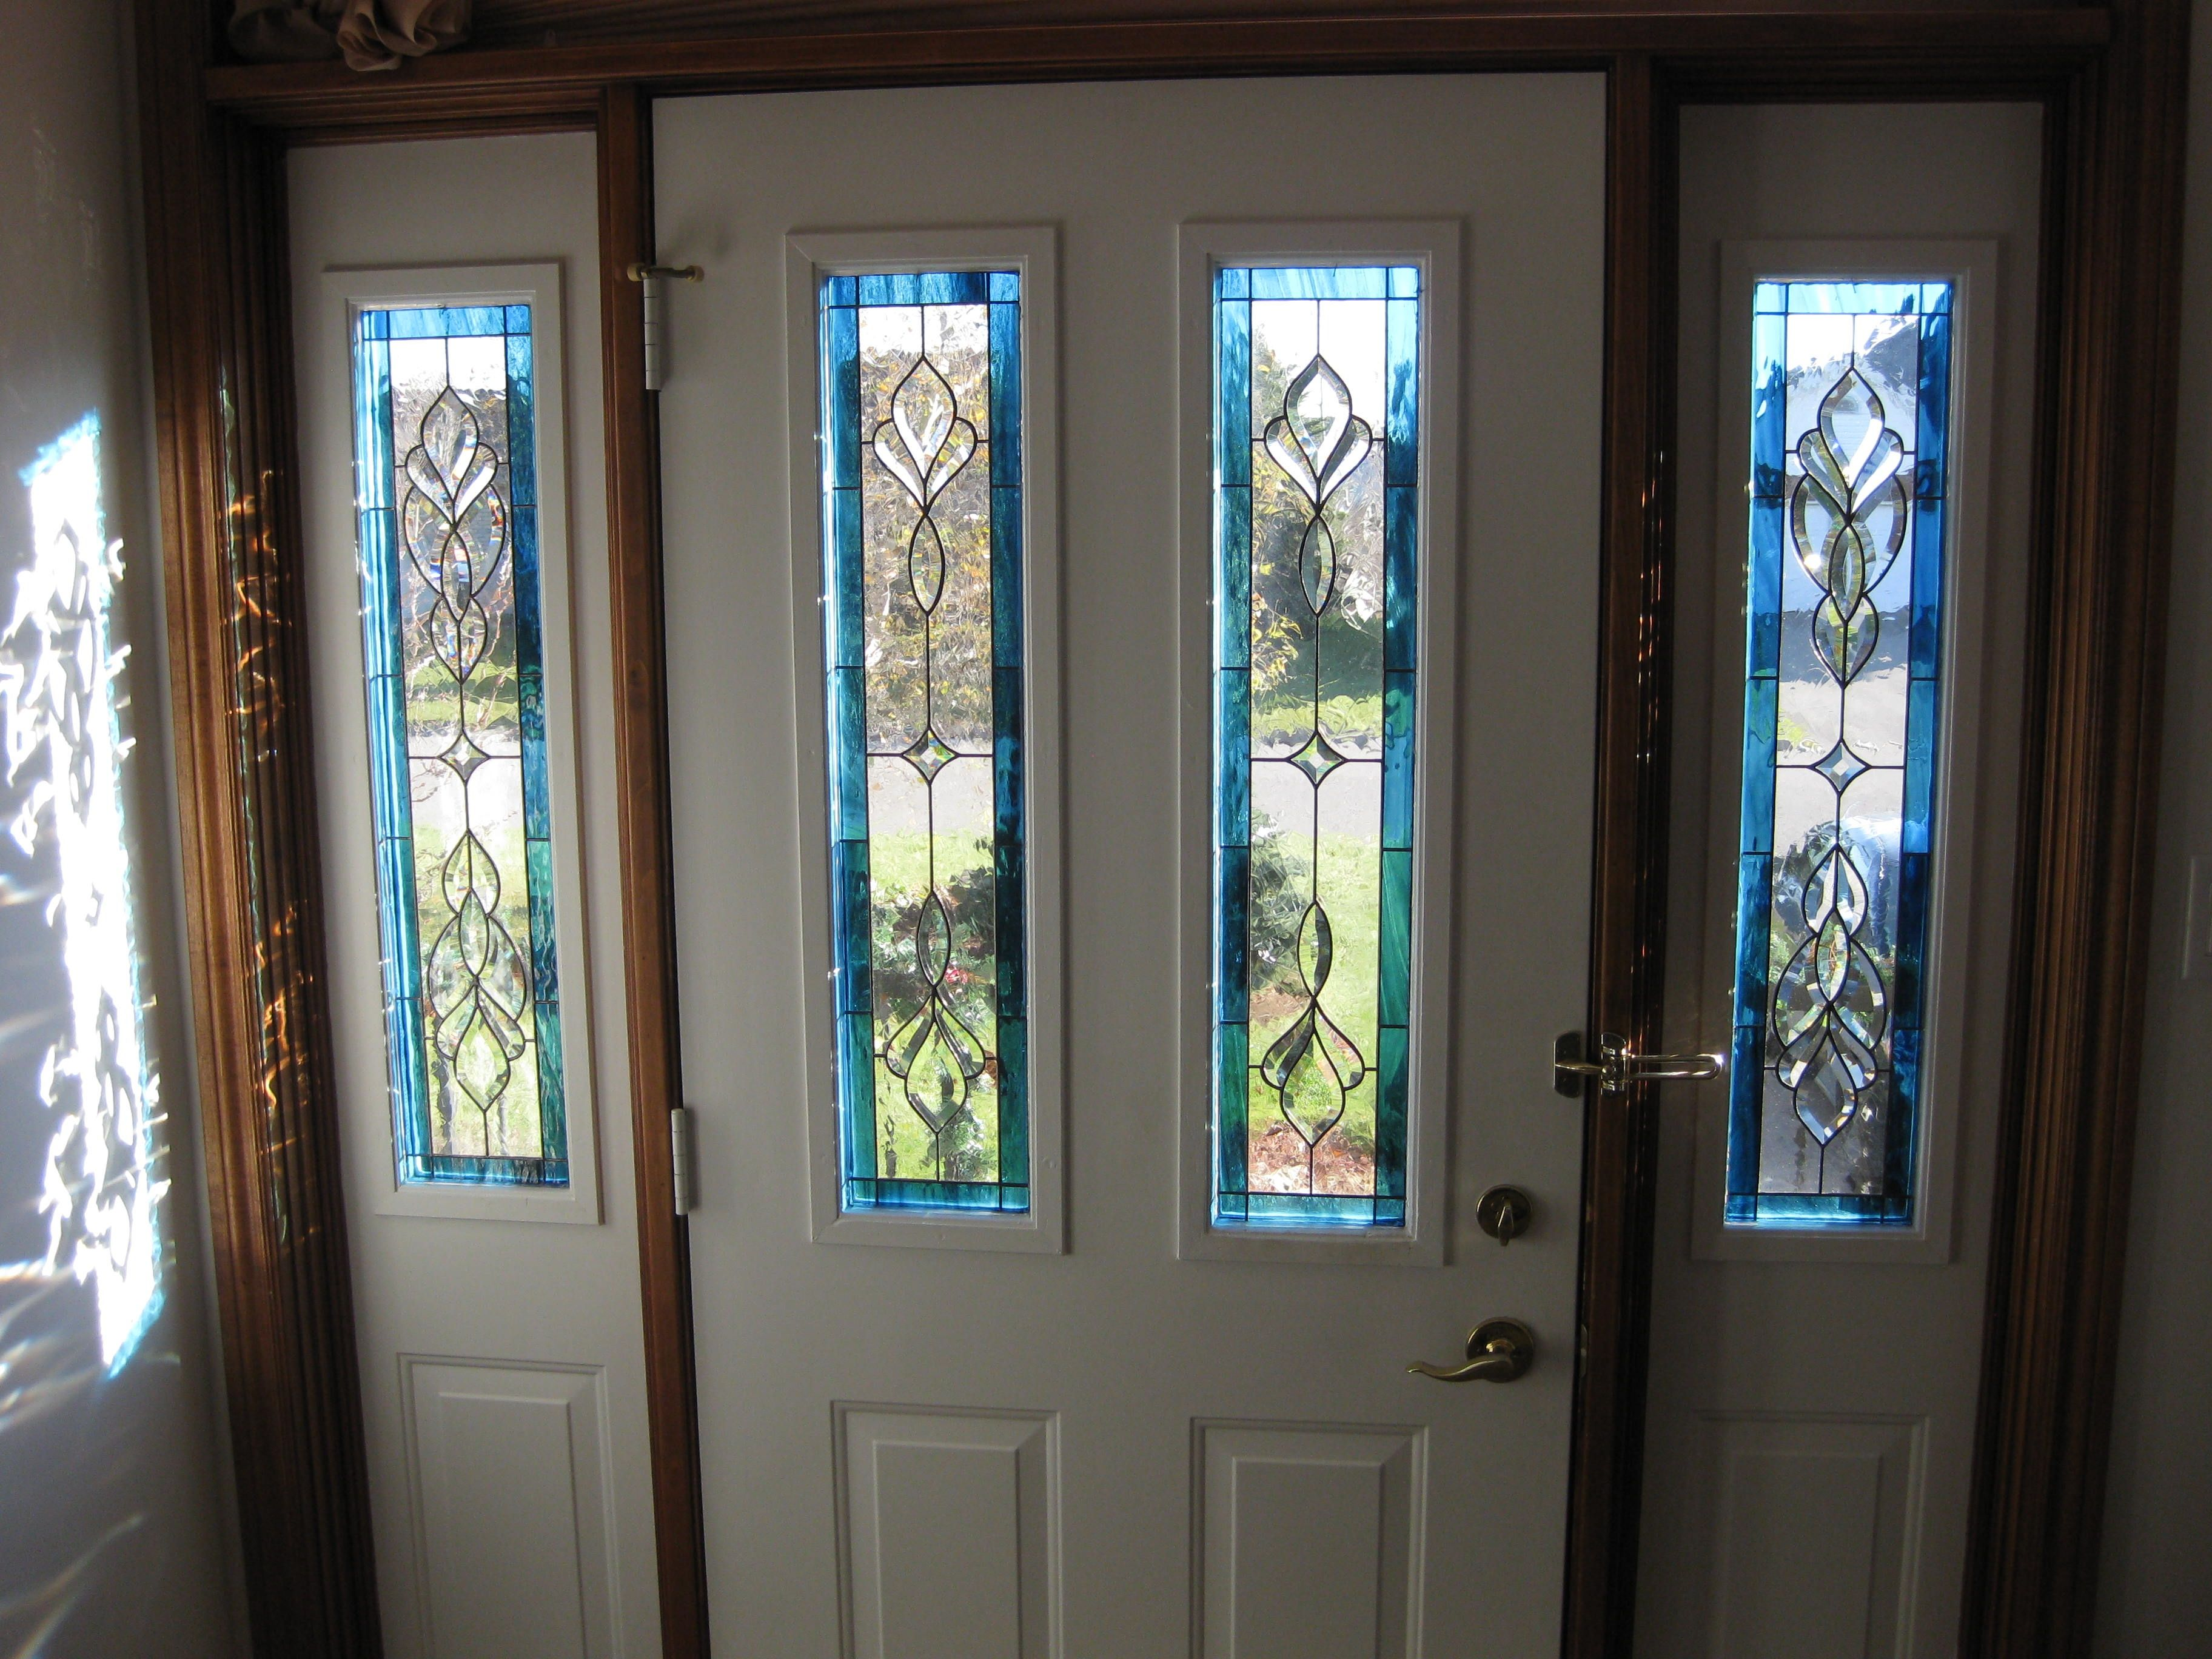 Stained glass front door patterns glass doors pinterest glass stained glass front door patterns planetlyrics Images